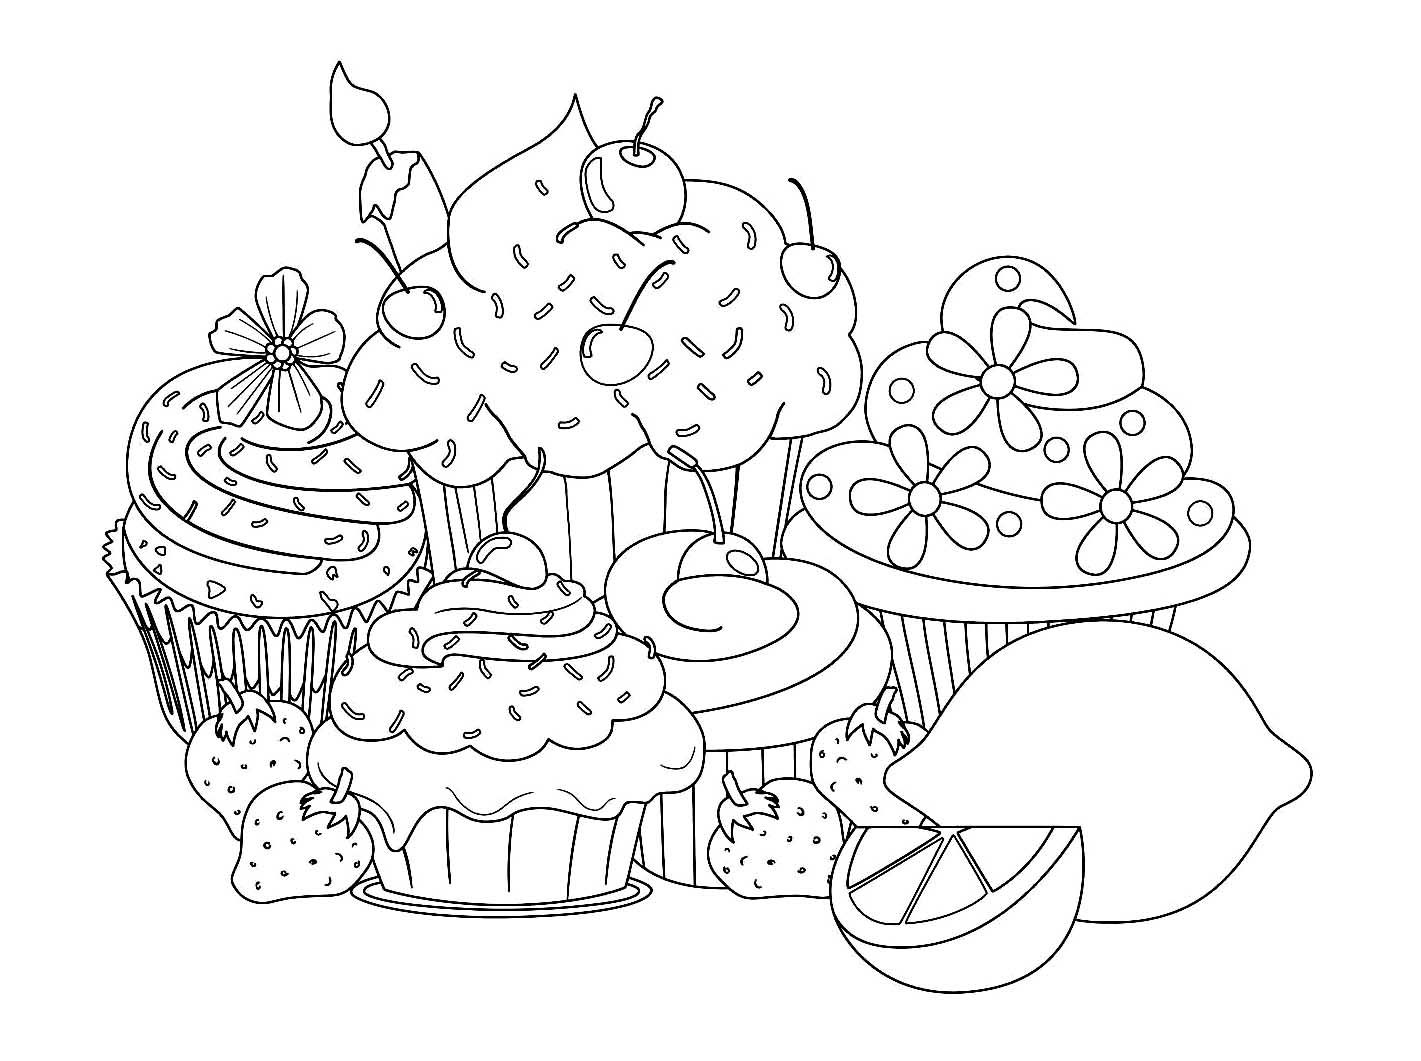 Adult Best Cupcakes Coloring Page Gallery Images top plus de 1000 propos cup cakes coloring pages sur pinterest cupcakes cupcake et imprimantes ima